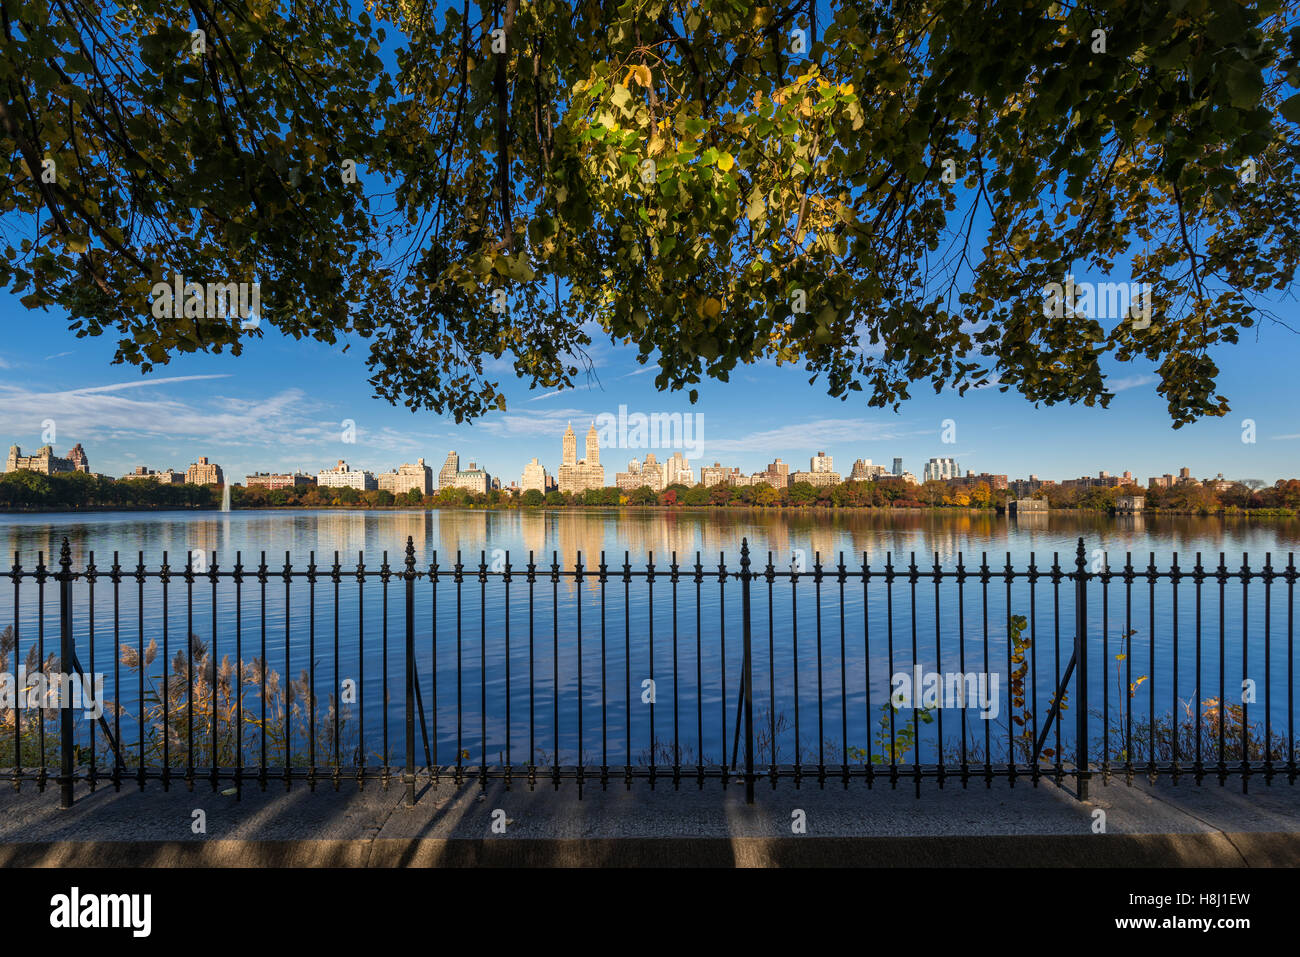 Fall in Central Park with view on the Upper West Side from the Jacqueline Kennedy Onassis Reservoir. New York City - Stock Image